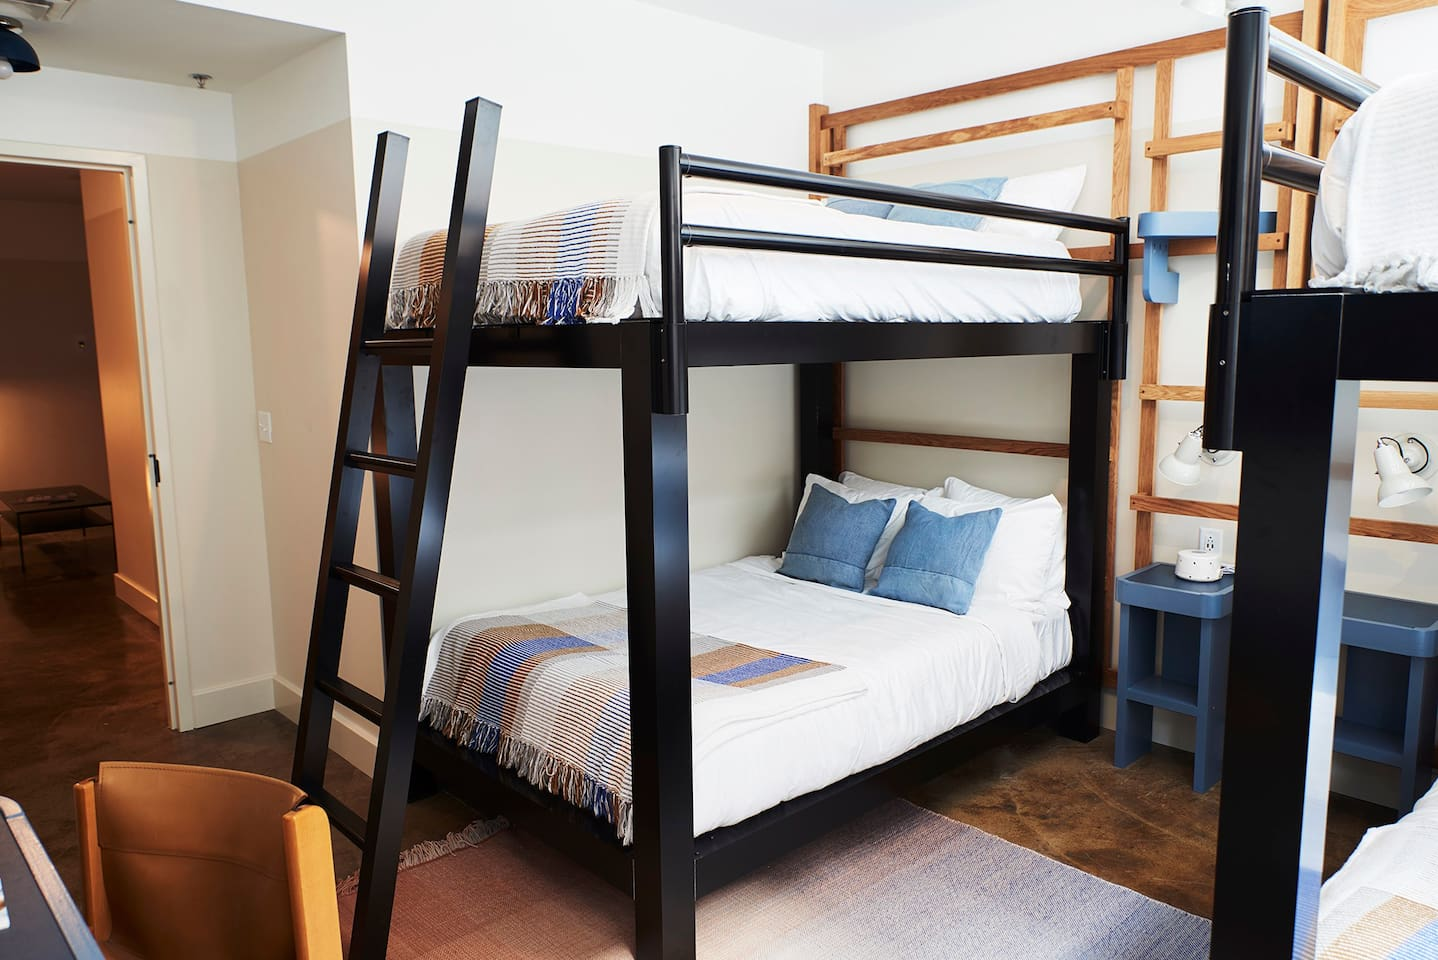 Each bunk room has four, full-sized beds, tons of pillows, and TV with full DirecTV.